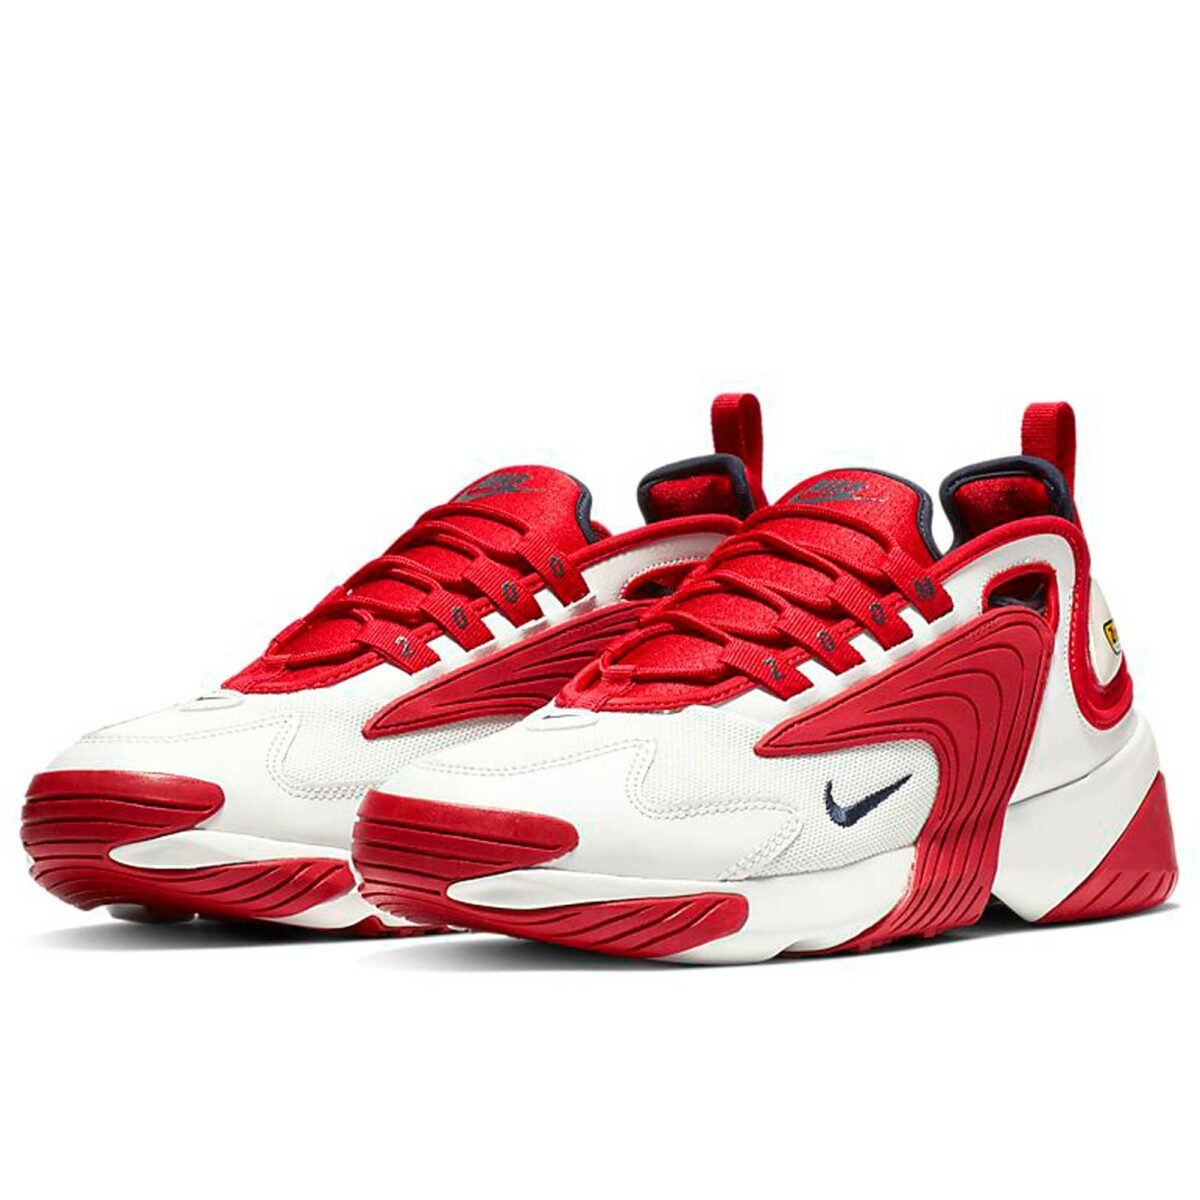 nike zoom 2k white red AOO269_102 купить